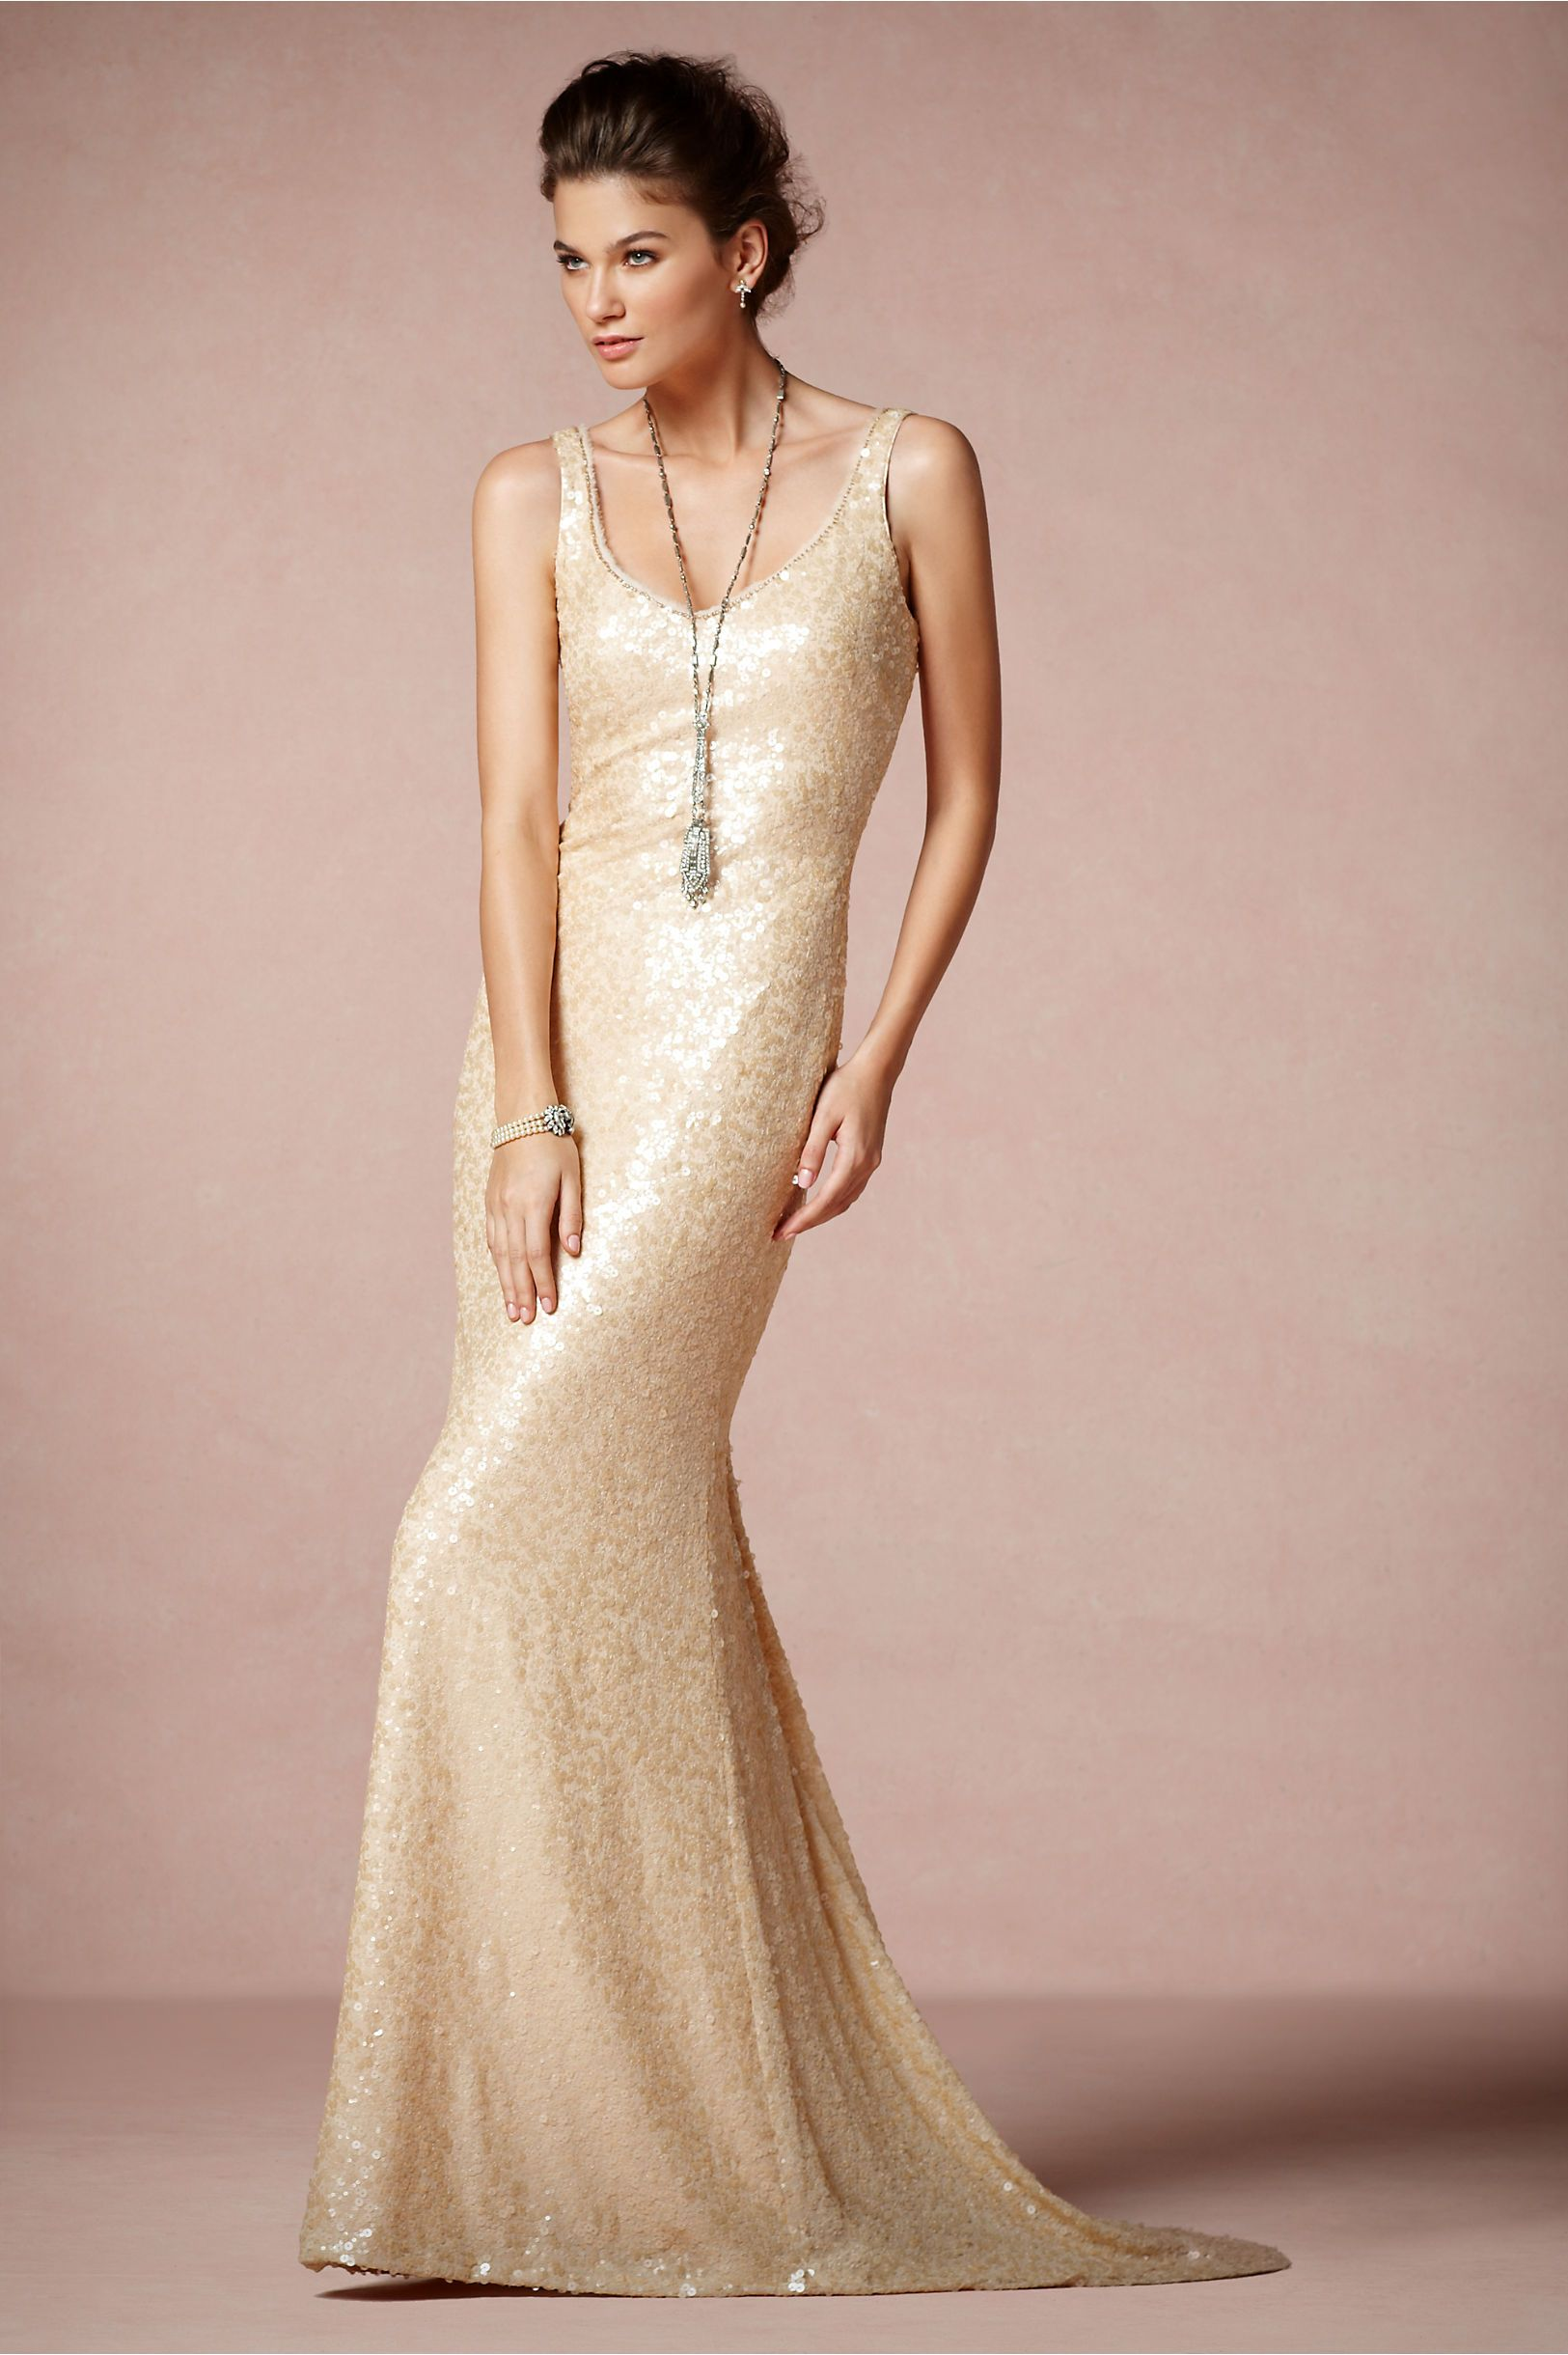 simple champagne wedding dress scoop neck | fashion | Pinterest